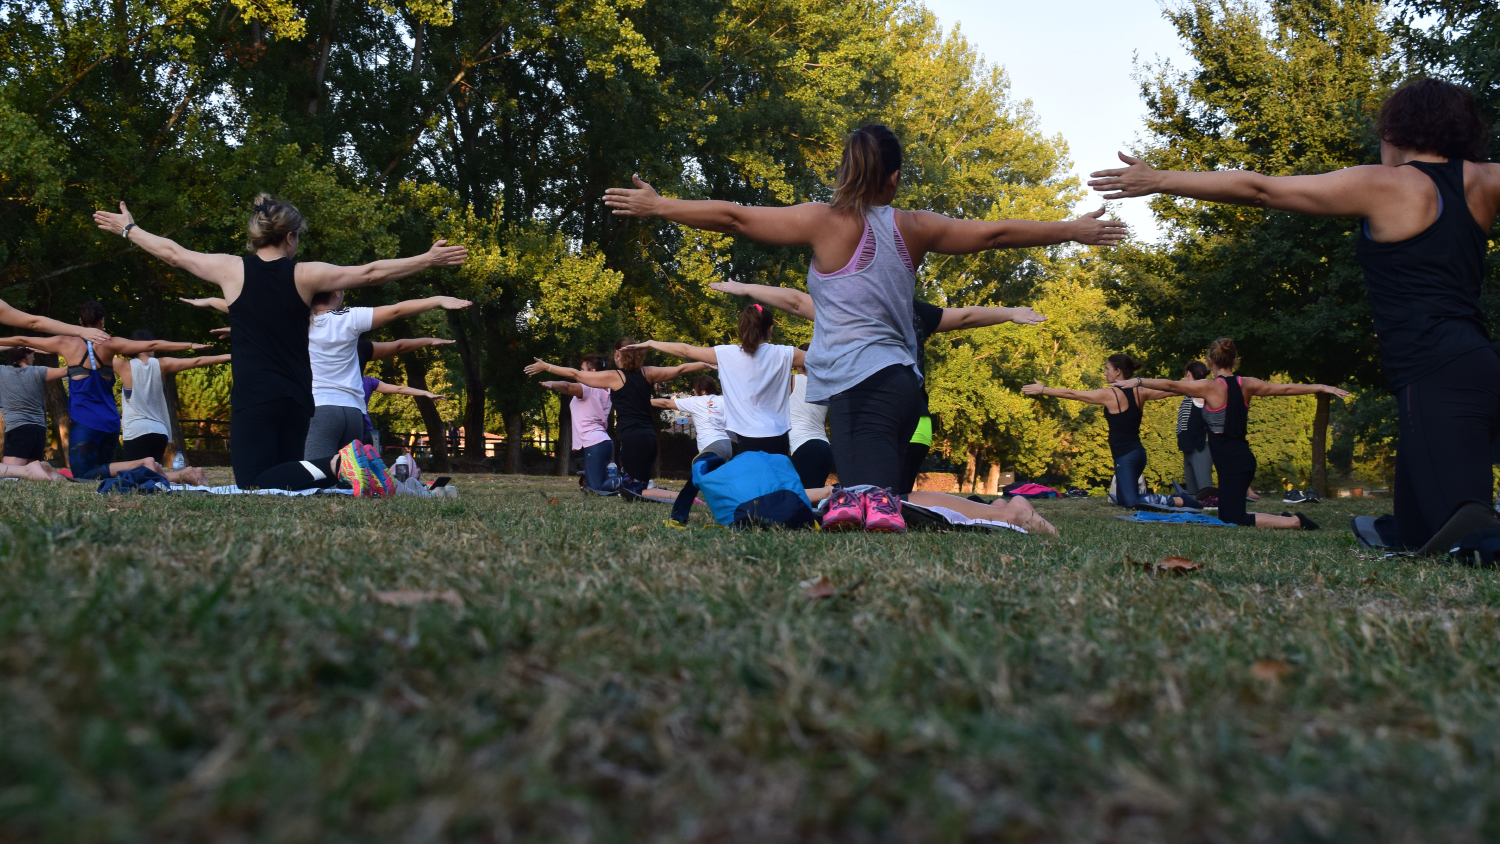 A group practices yoga outdoors.